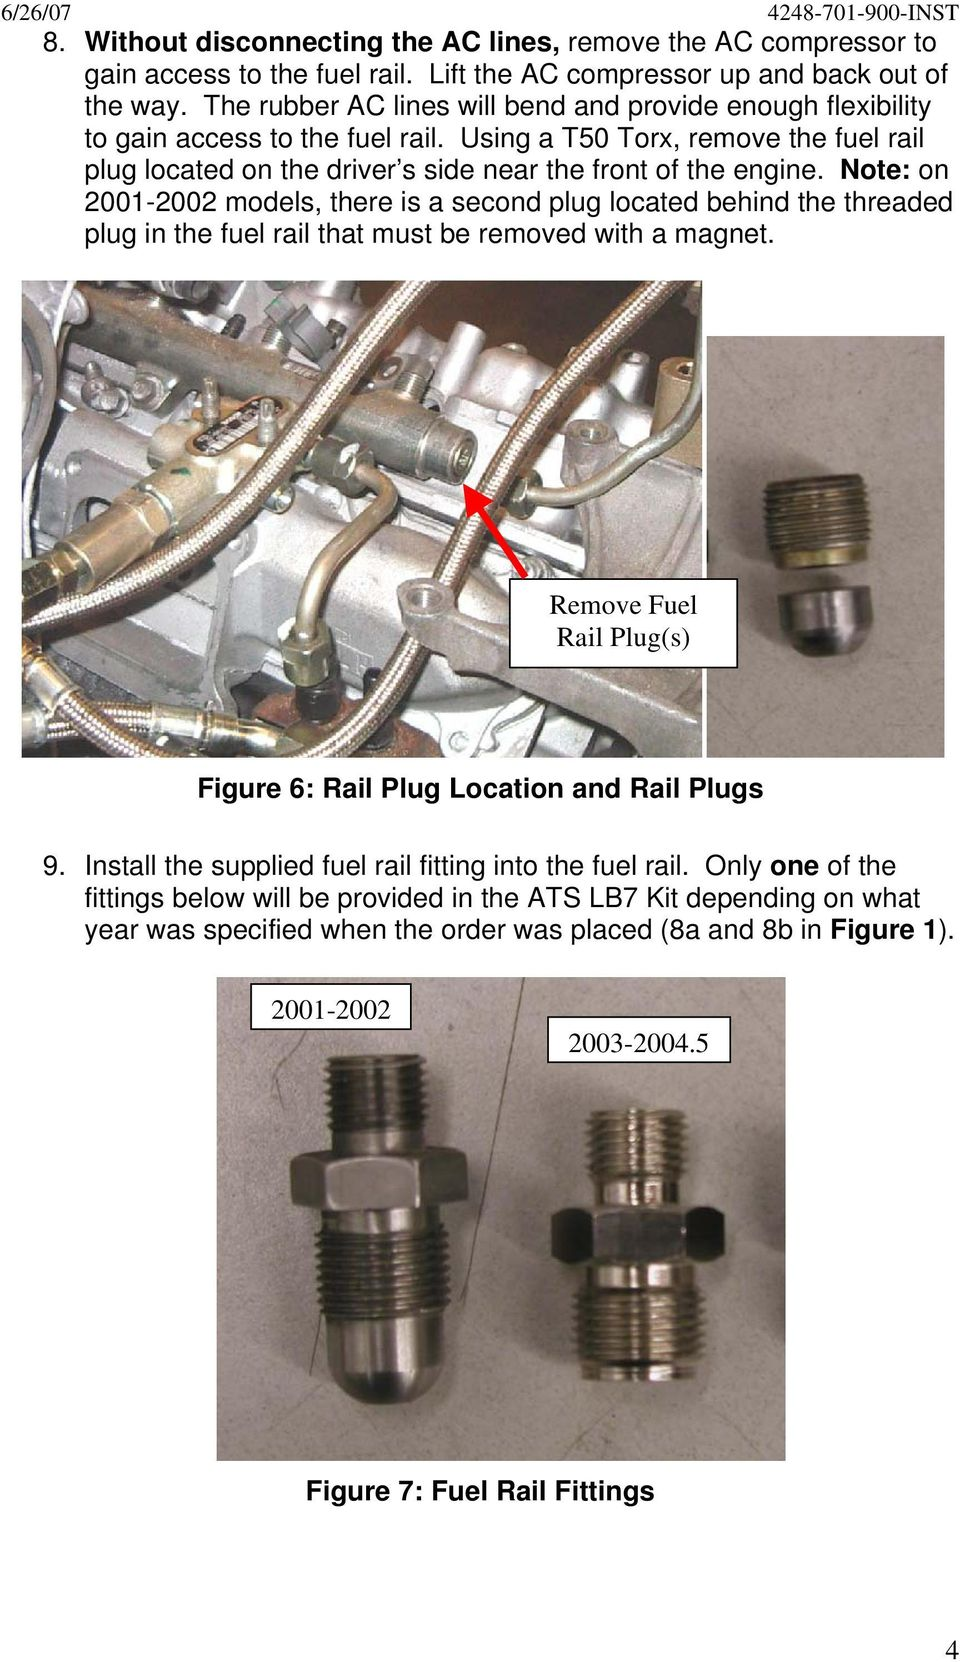 Note: on 2001-2002 models, there is a second plug located behind the threaded plug in the fuel rail that must be removed with a magnet.